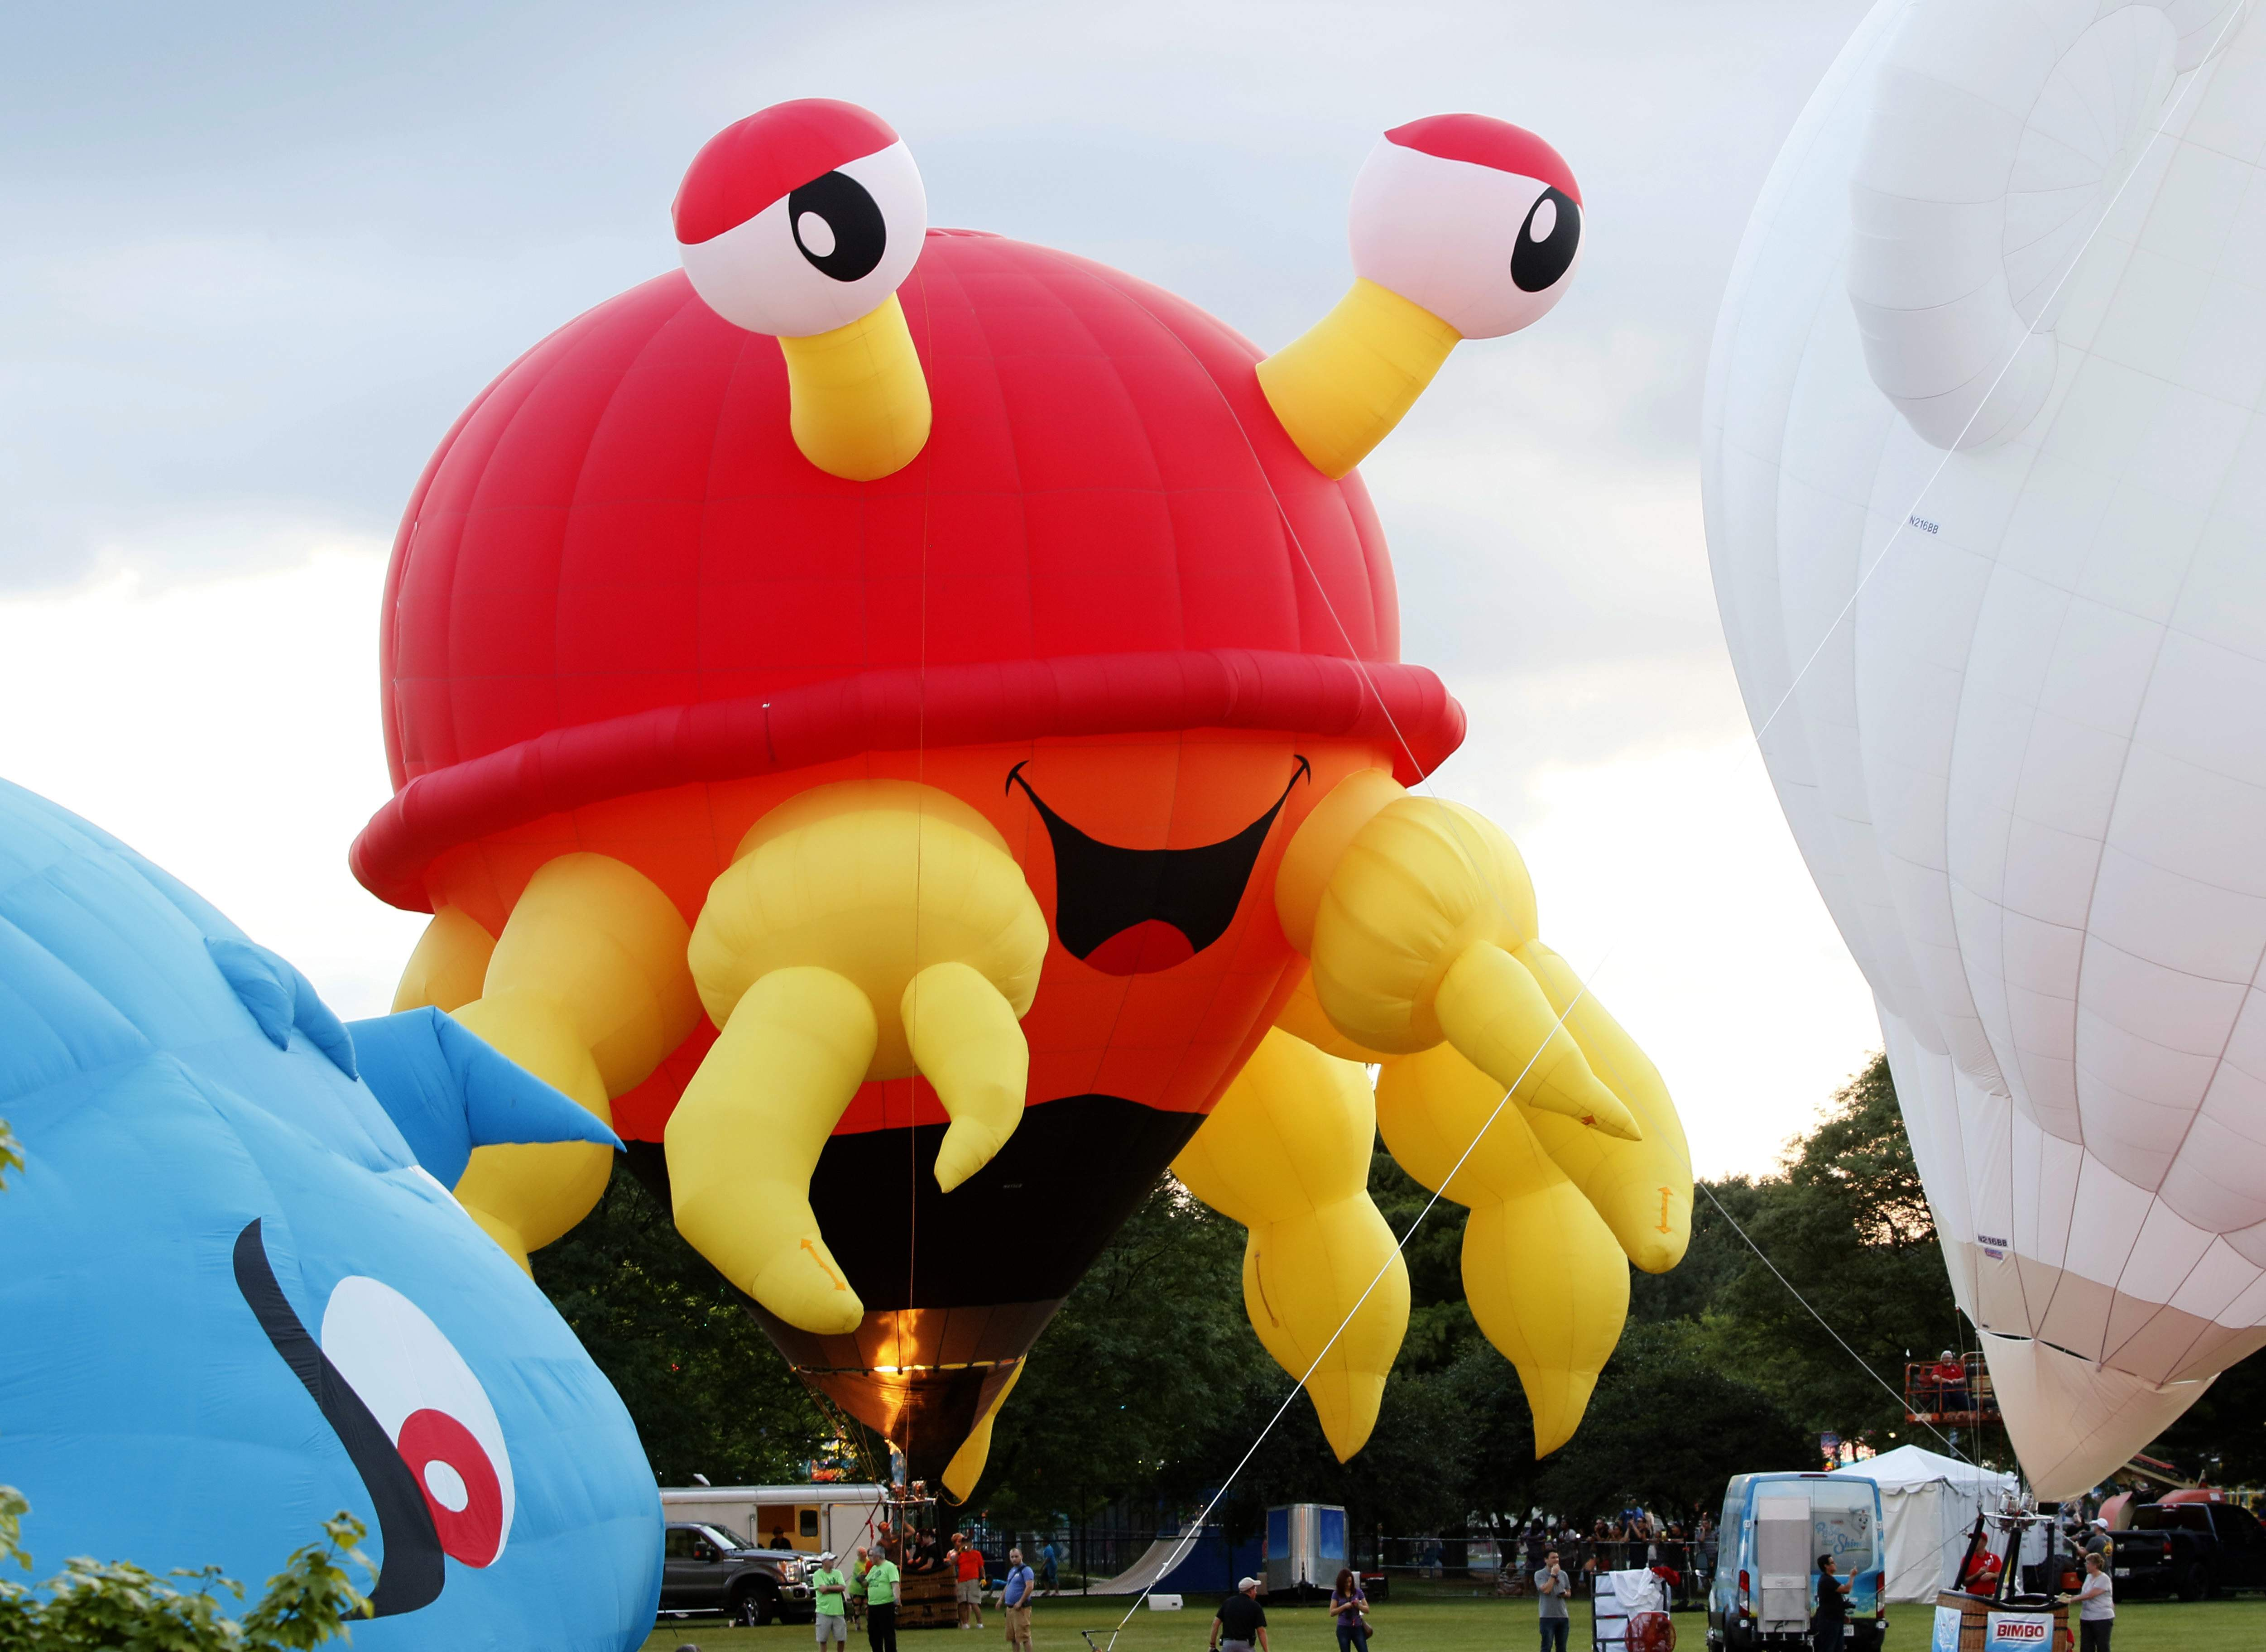 Roughly two dozen balloons of nearly every size and shape are the stars of the show at Lisle's Eyes to the Skies Festival.